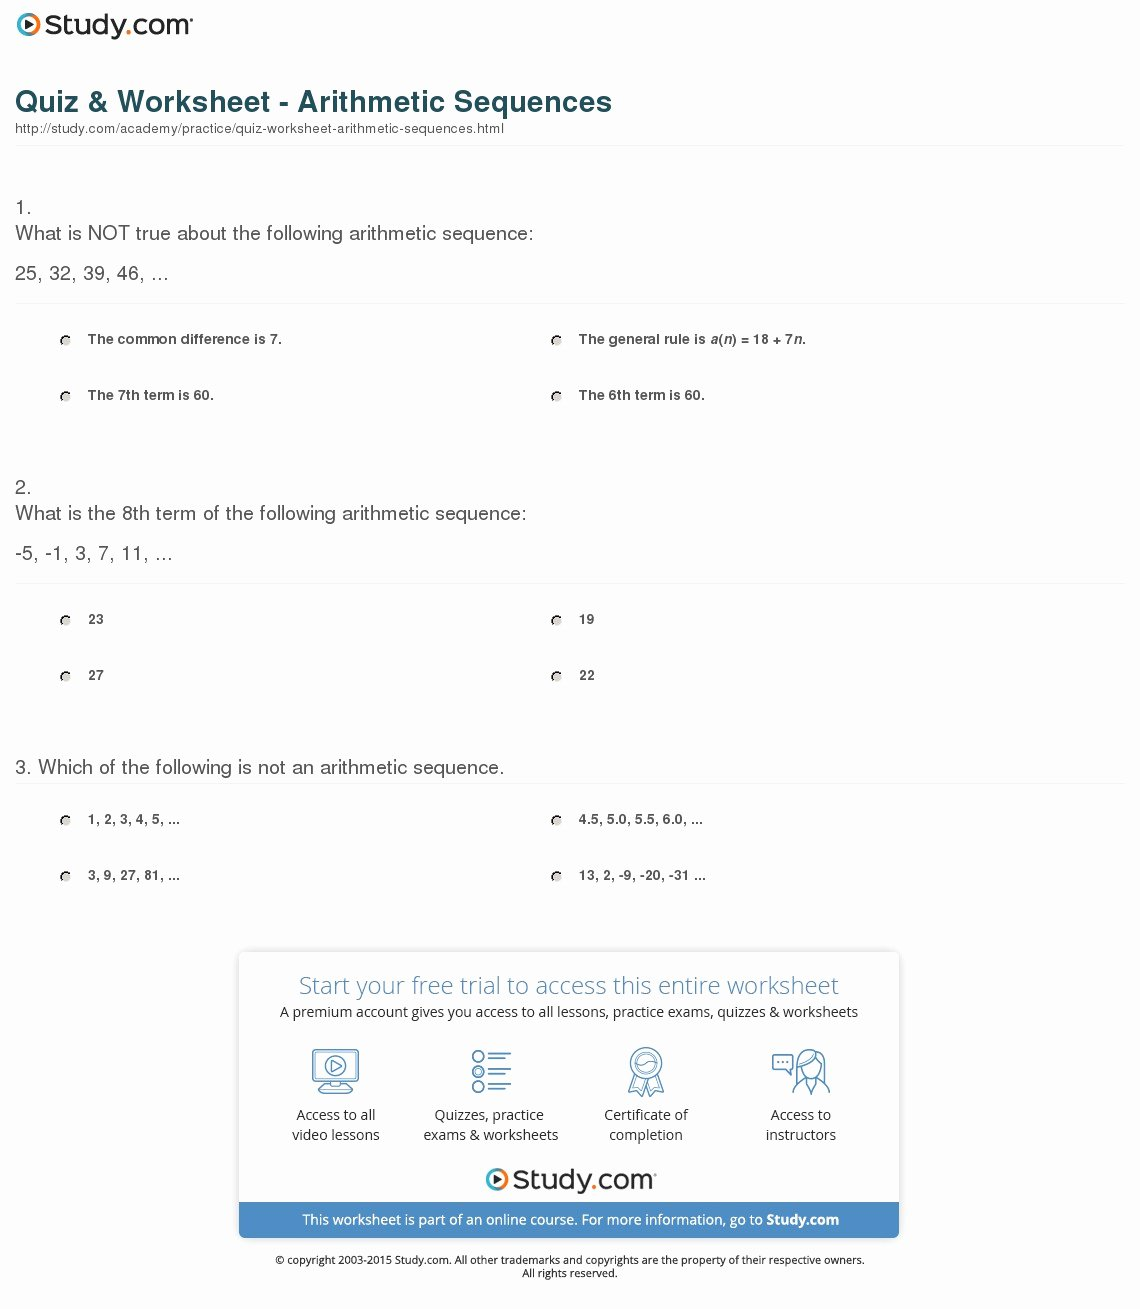 Arithmetic Sequences Worksheet Answers Elegant Quiz & Worksheet Arithmetic Sequences